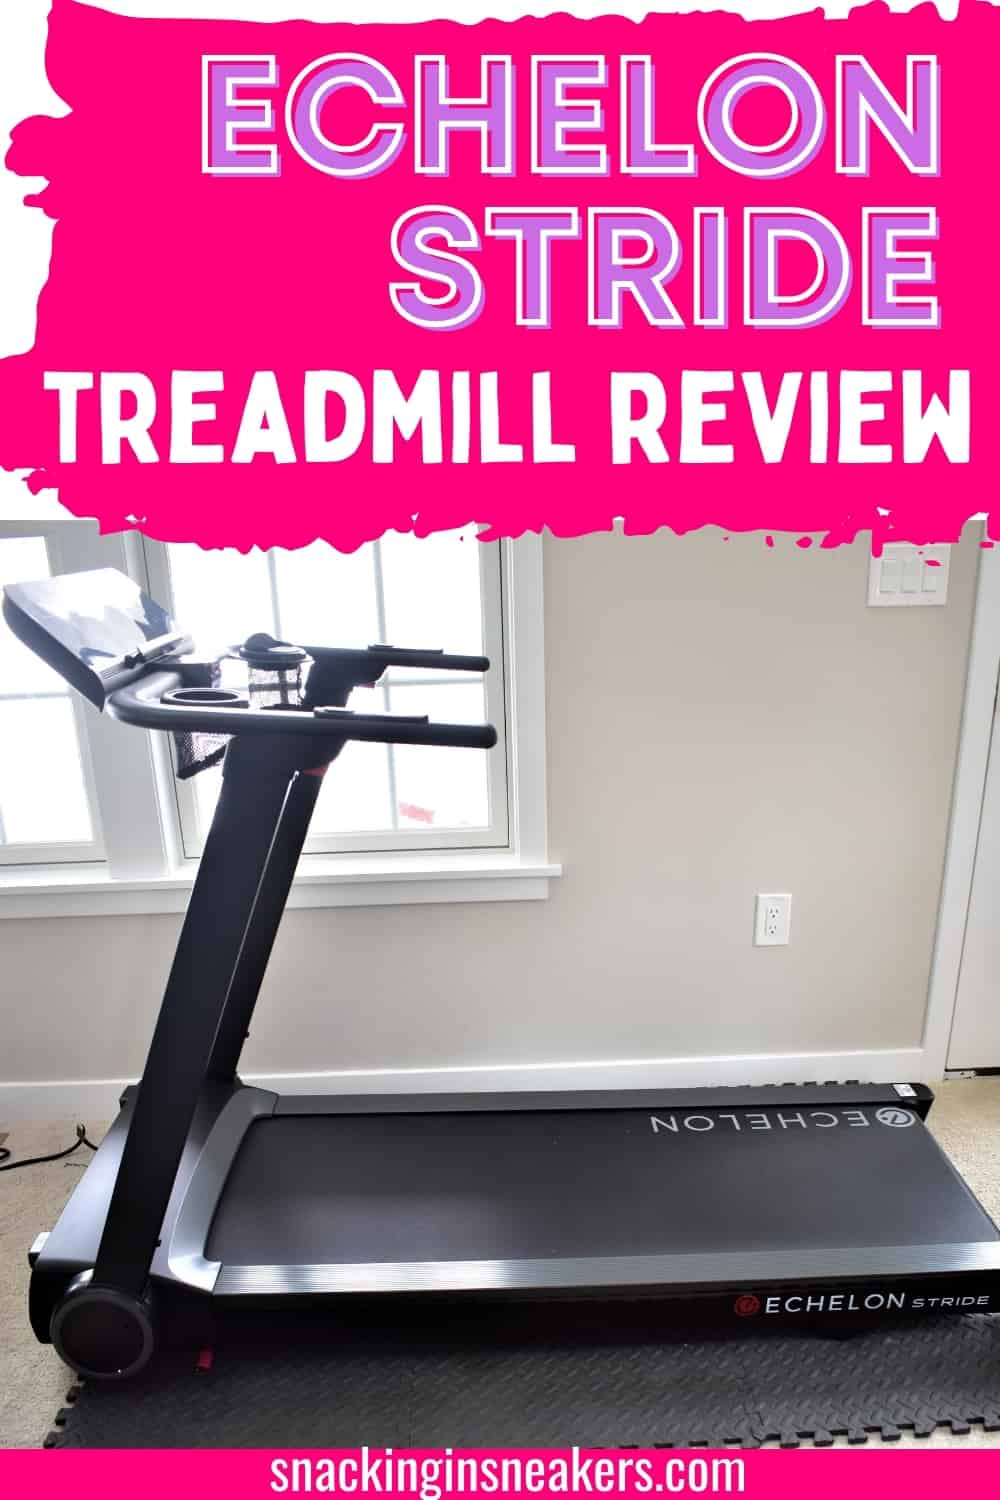 A treadmill on a heavy duty foam mat next to a window, with a text overlay that says